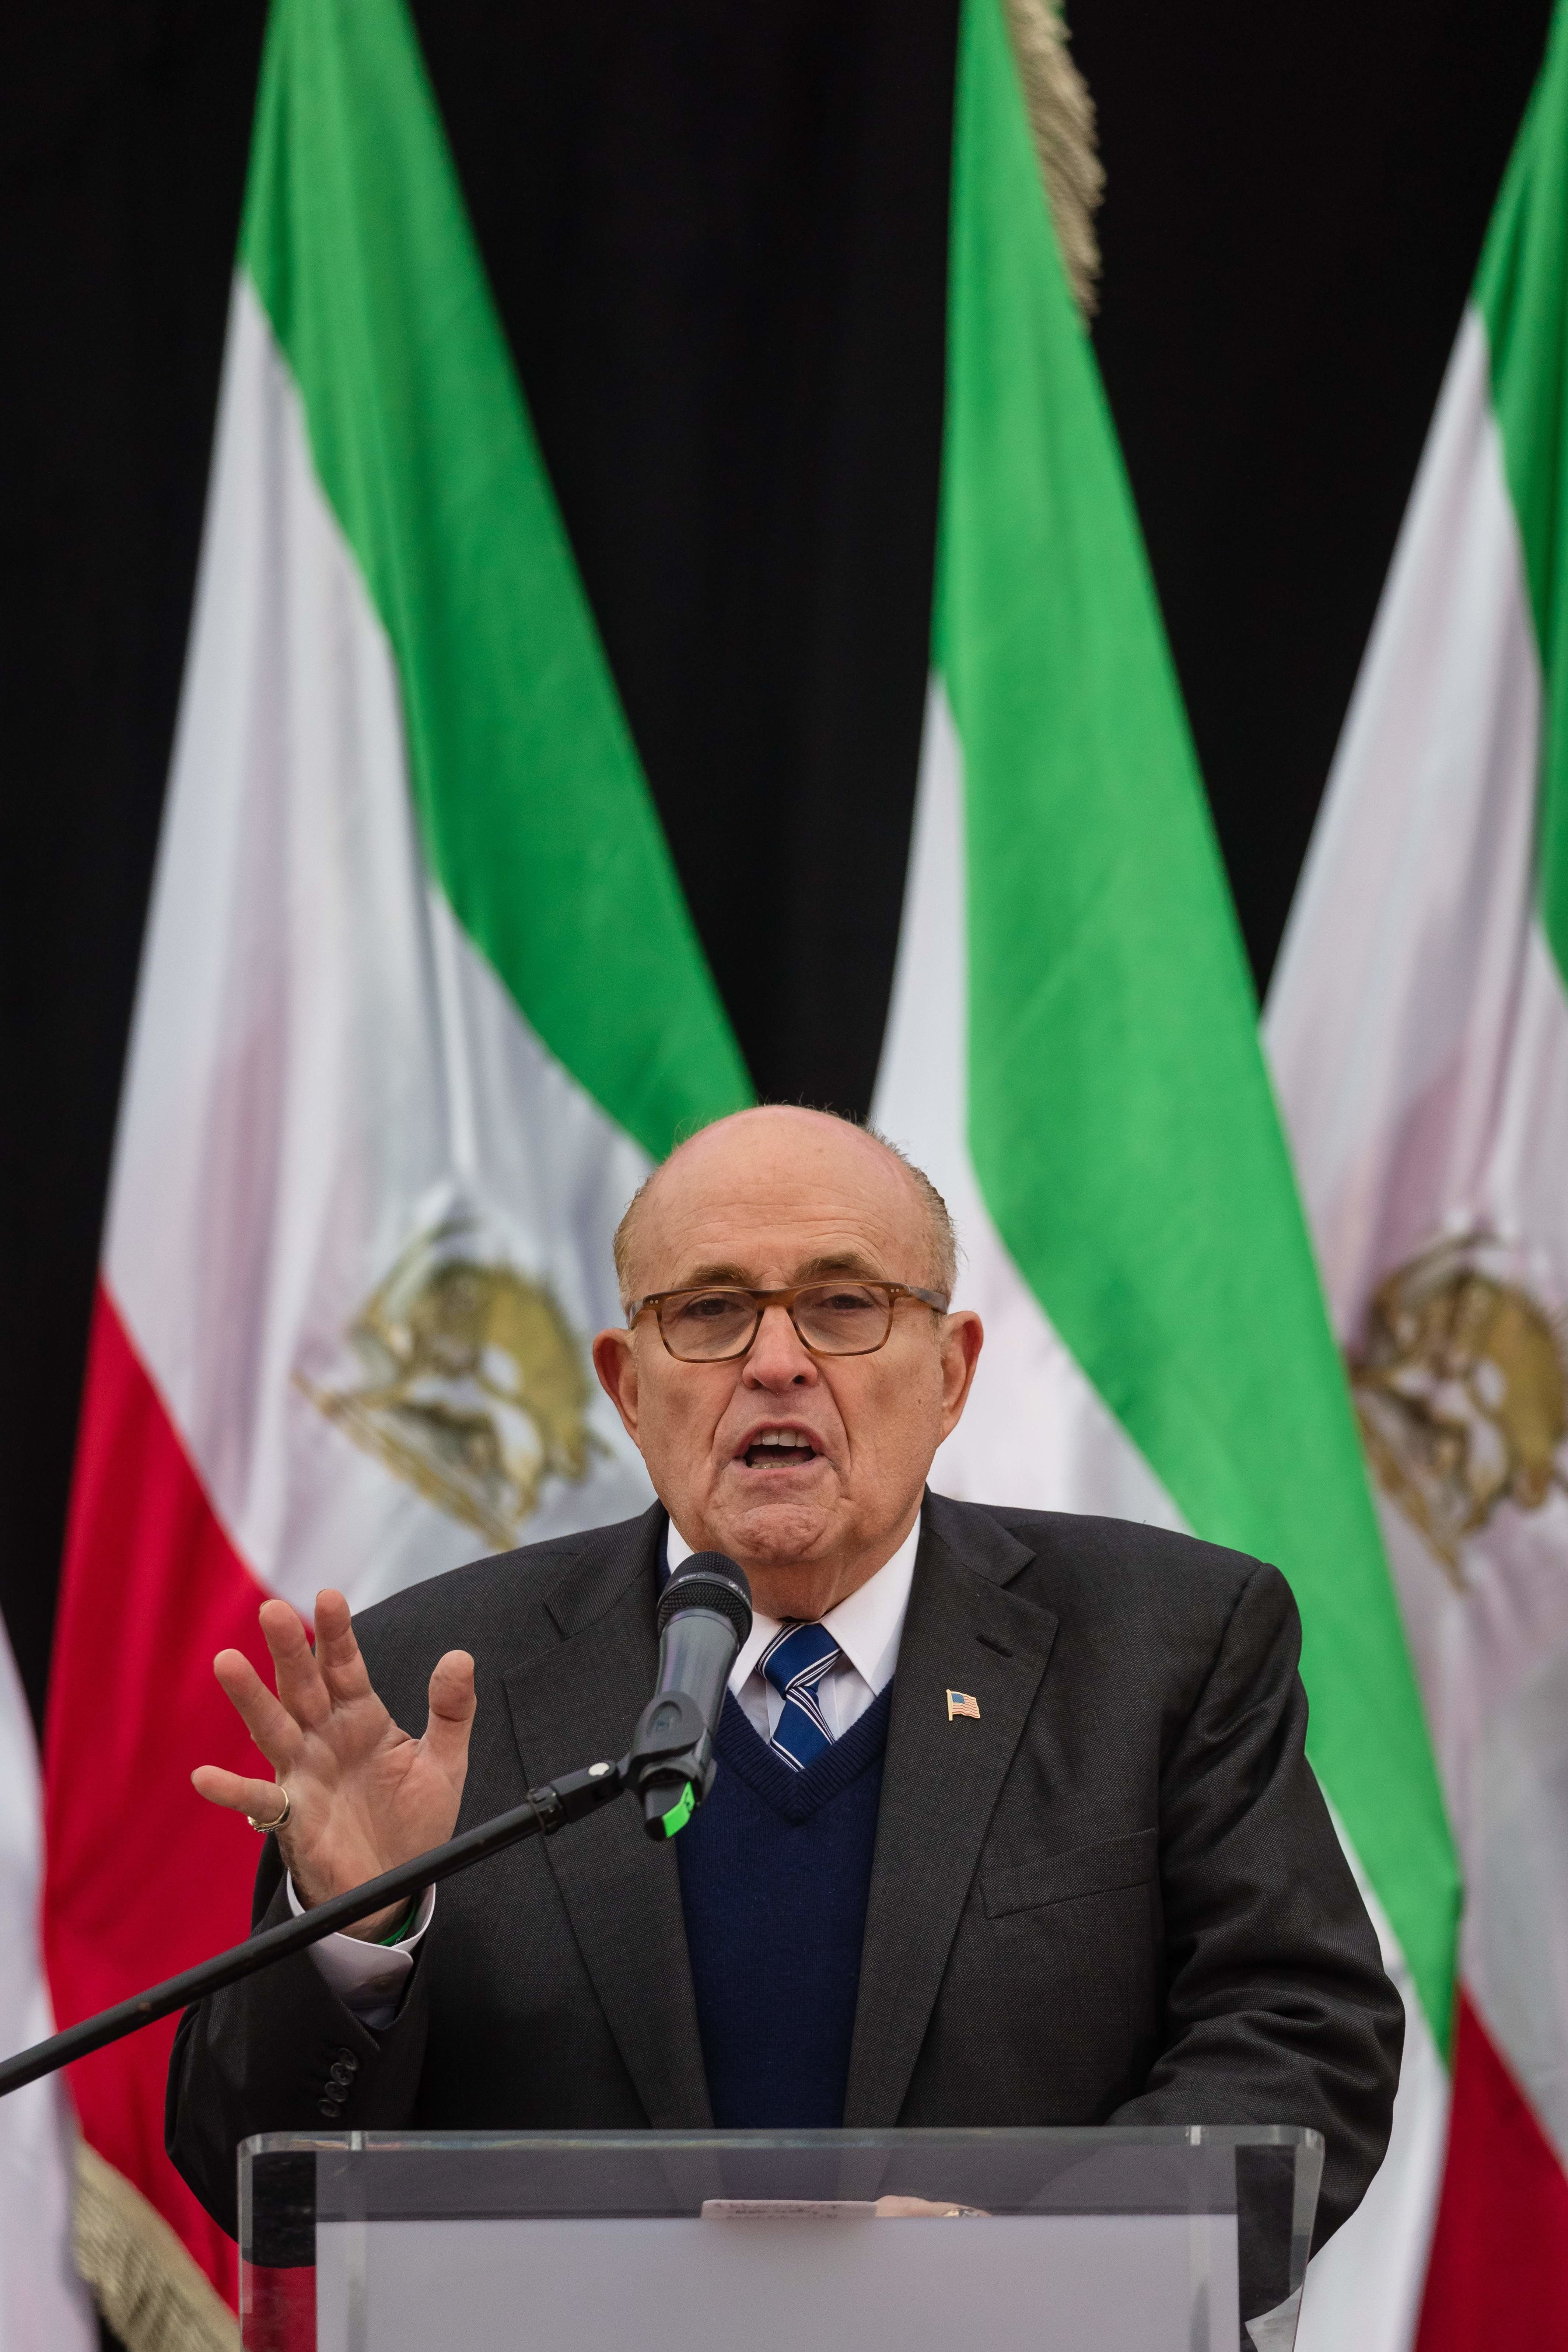 Rudy Giuliani - former mayor of New York City speaks during a rally of supporters of the National Council of Resistance of Iran, demanding tougher policy on Iran and its violation of human rights in Warsaw on February 13, 2019. (Photo by Wojtek RADWANSKI / AFP)        (Photo credit should read WOJTEK RADWANSKI/AFP/Getty Images)